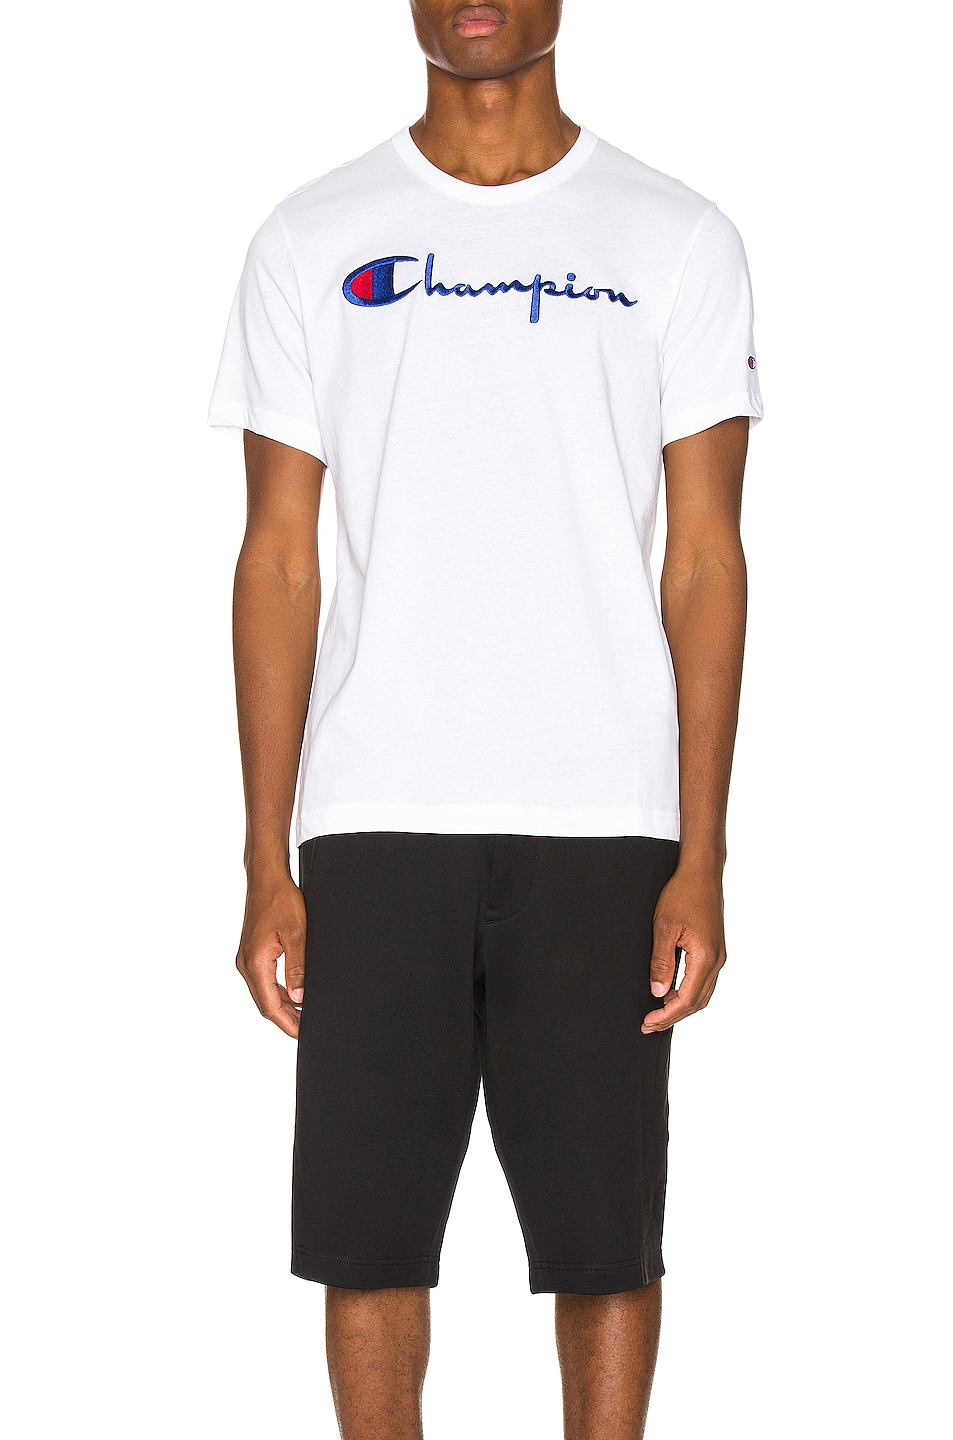 Image 1 of Champion Reverse Weave Big Script Tee in White